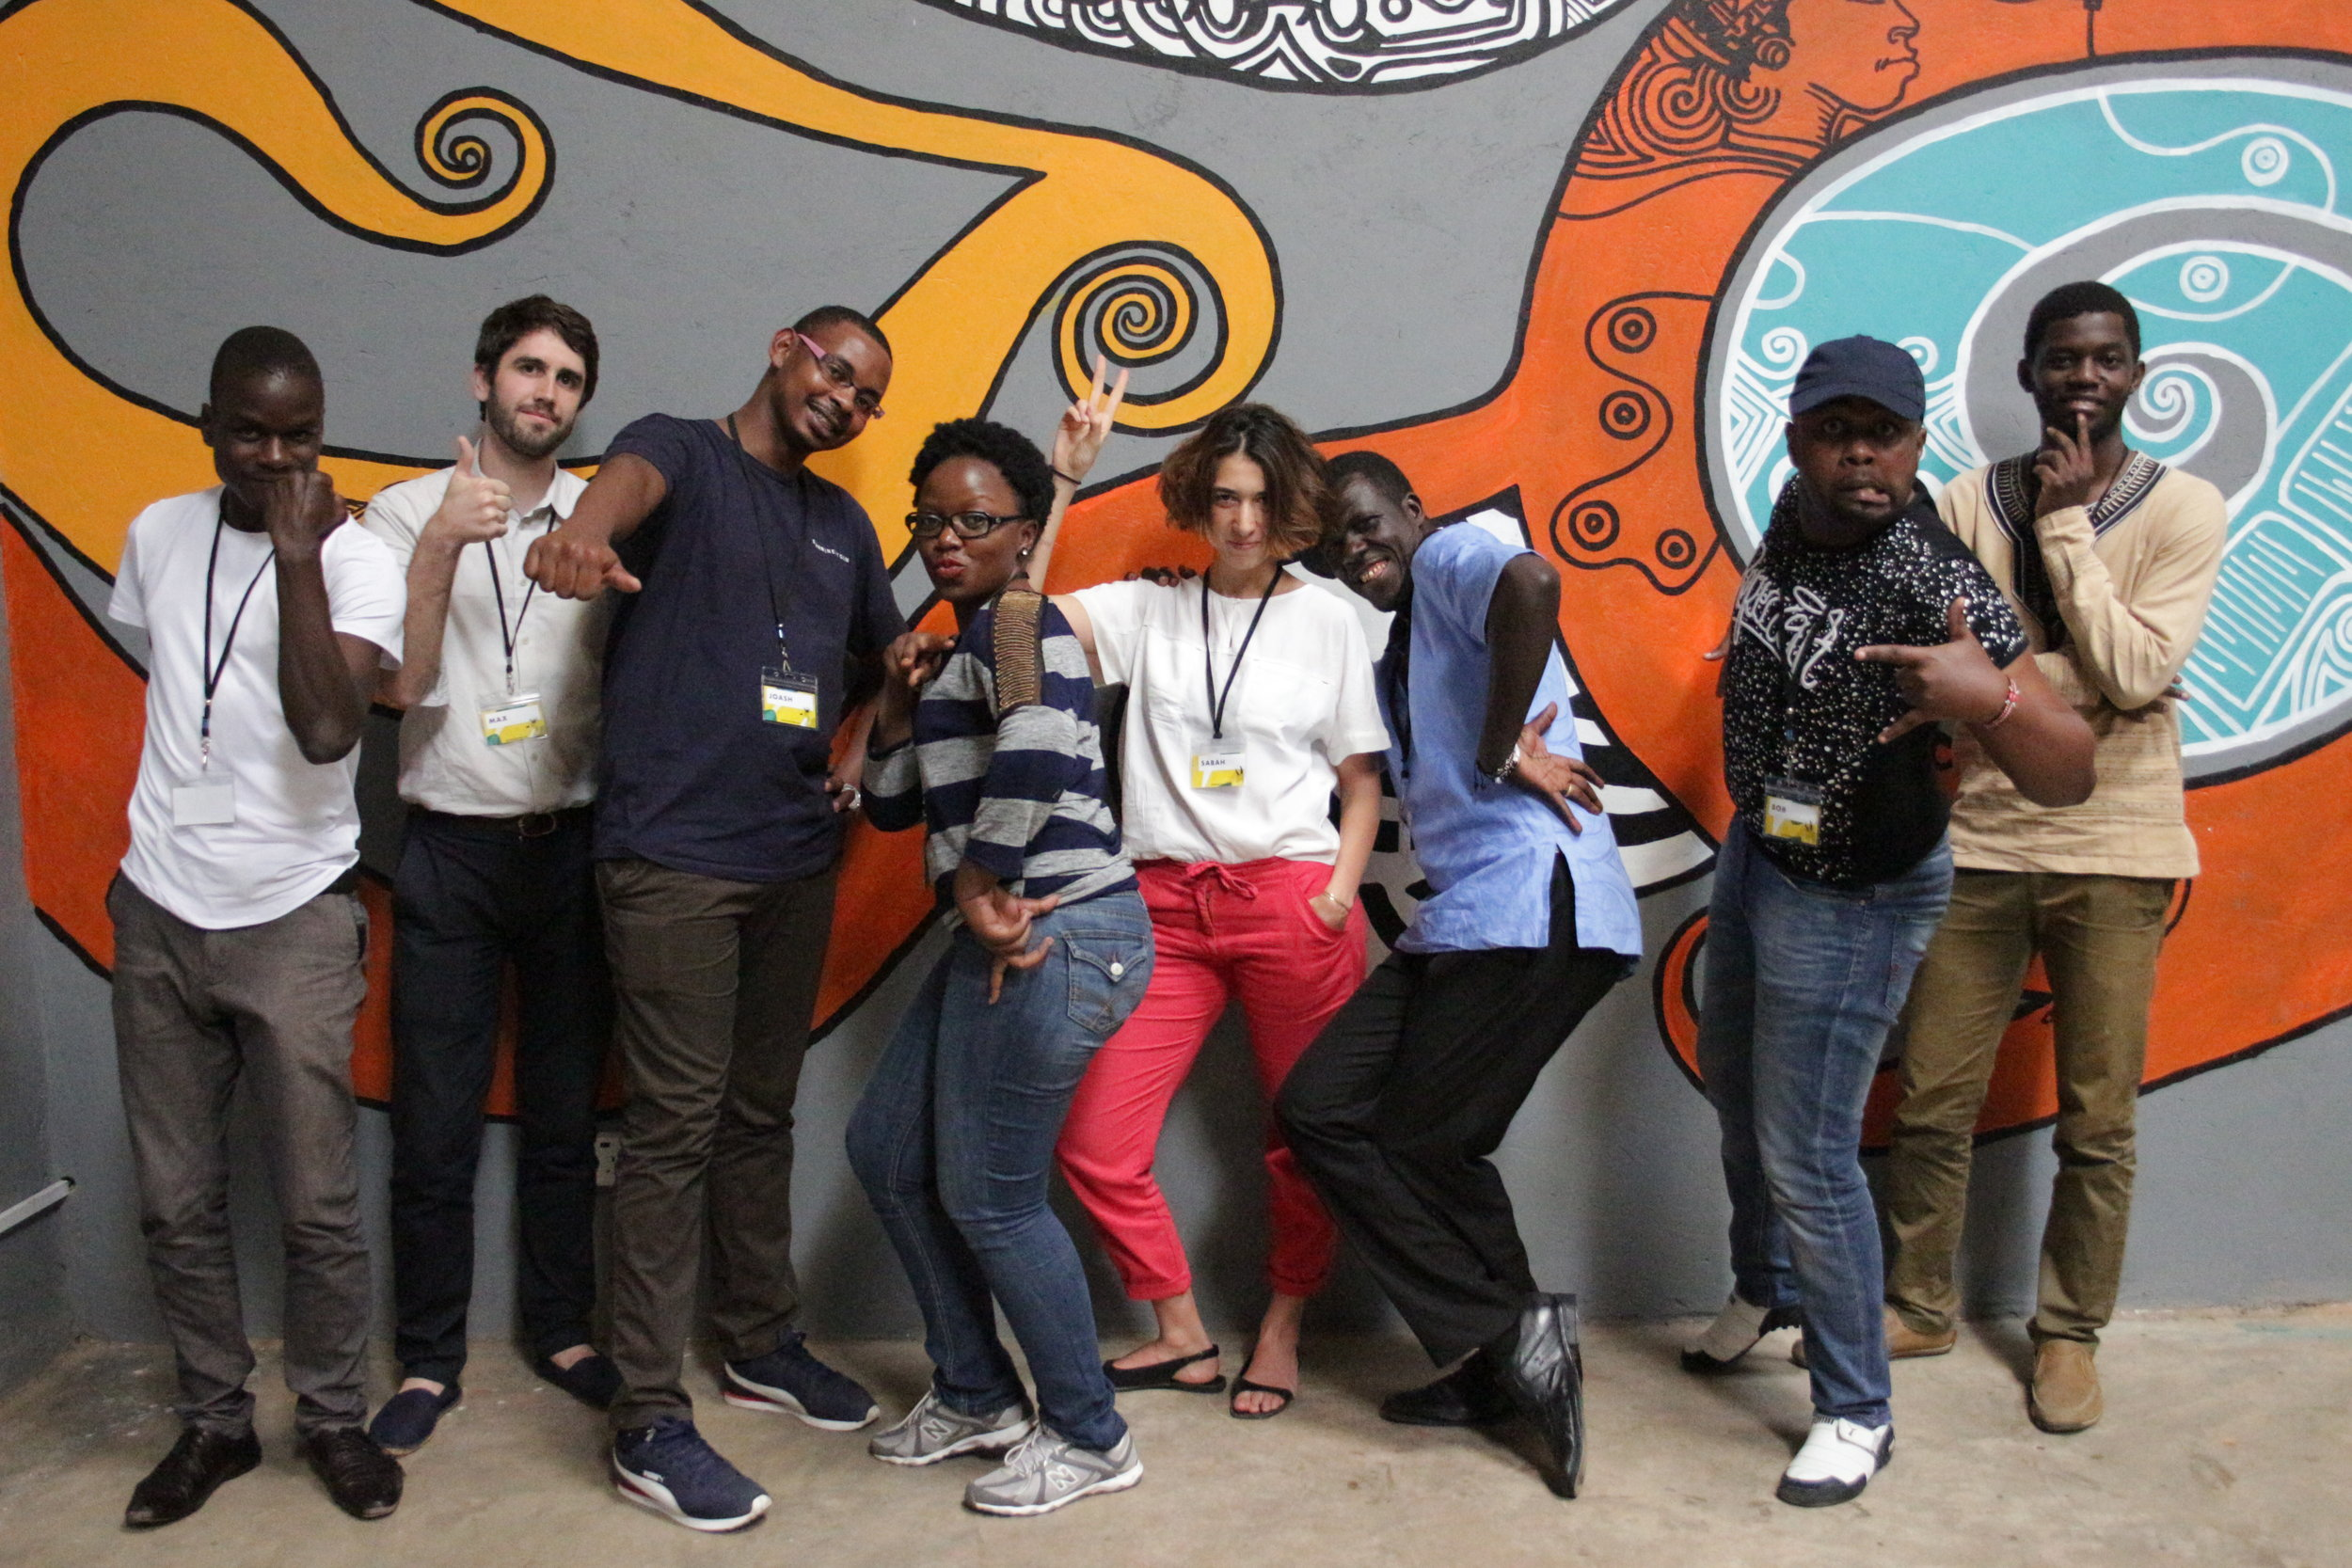 The team consisted of two CHRIPS representatives Joash and Gabriel, they were matched with a creative team headed up by DATA4CHANGE alumni Max. Their team consisted of Sabah (graphic designer from Egypt), Clement (developer from Kenya), Joy (data researcher from Uganda), Bob (journalist from Kenya), and Patrick (data journalist from Uganda).